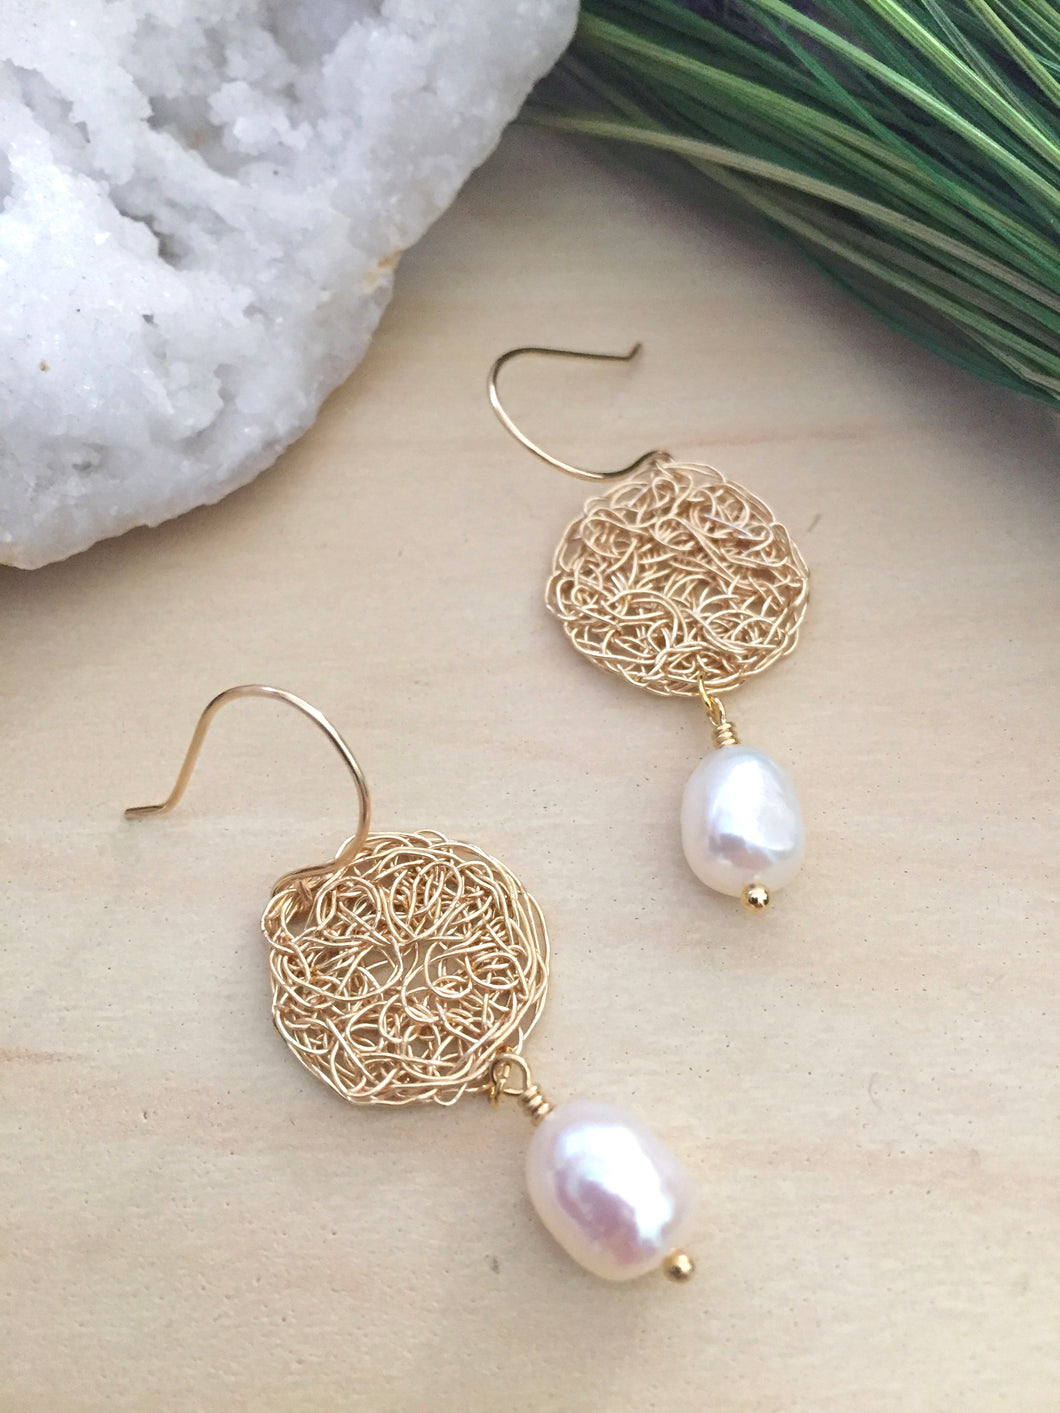 Top view of Round gold filigree disc earrings with a white freshwater pearl drop and on 14k gold fill ear wires